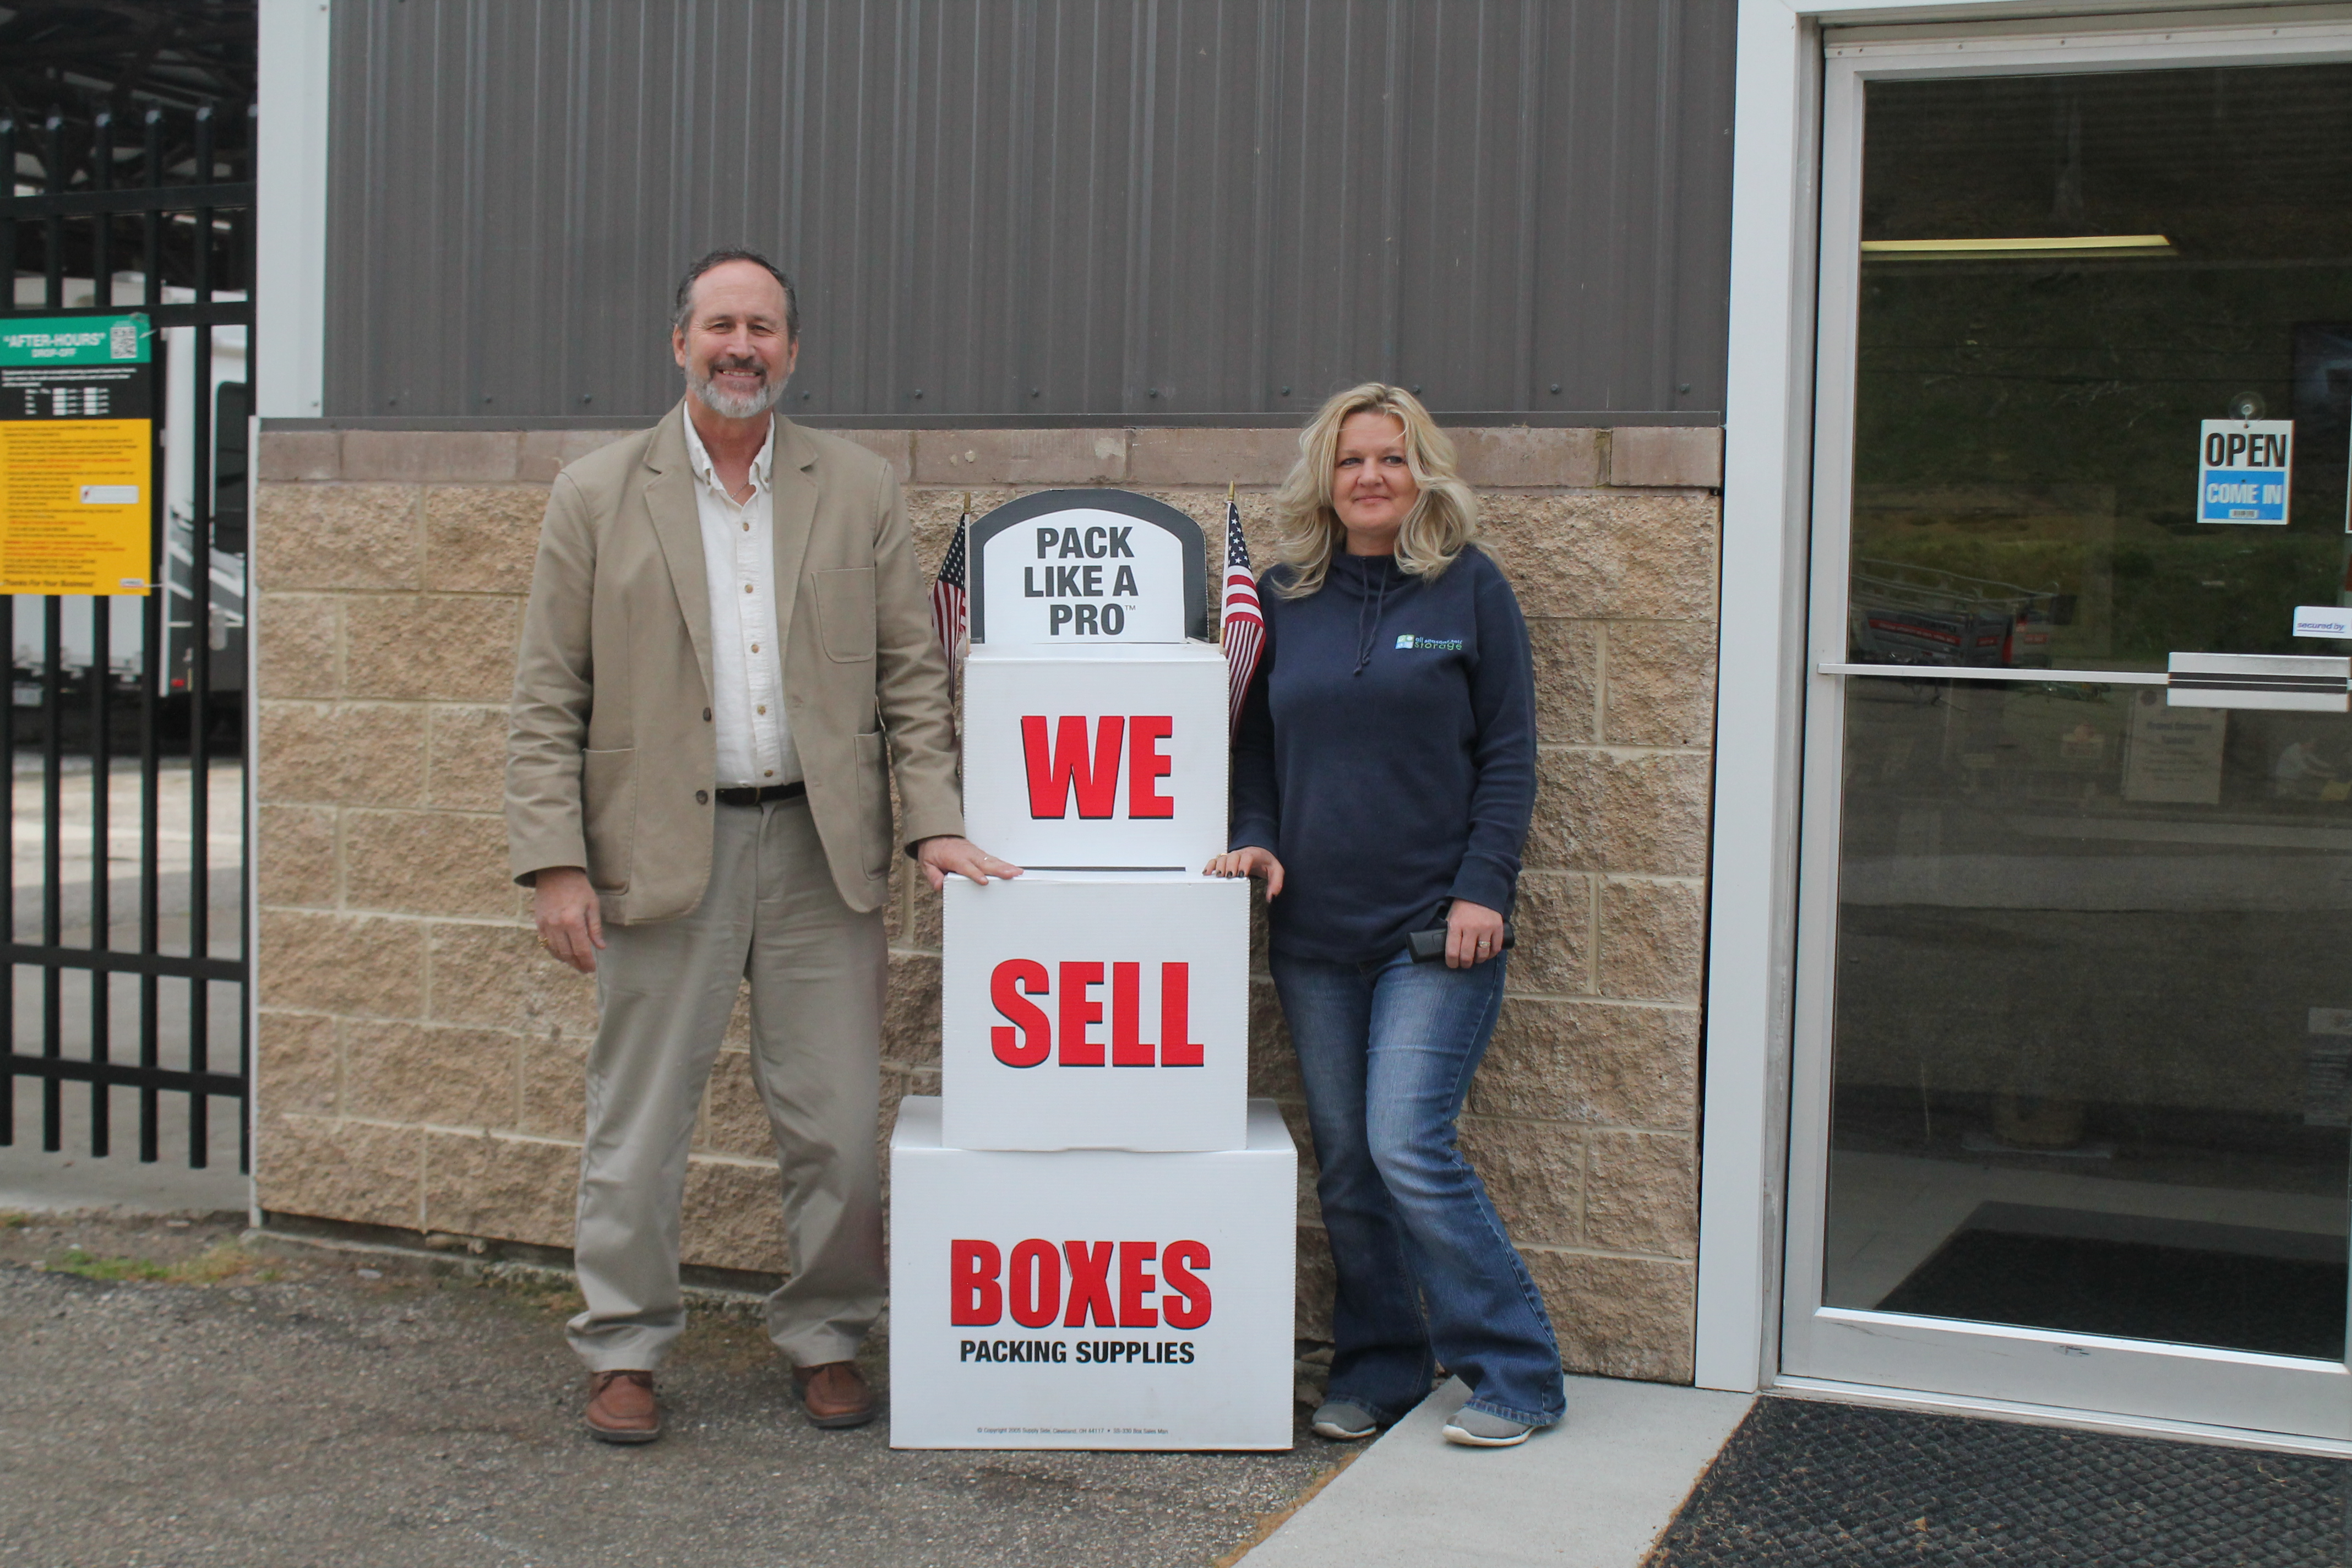 We Sell Boxes